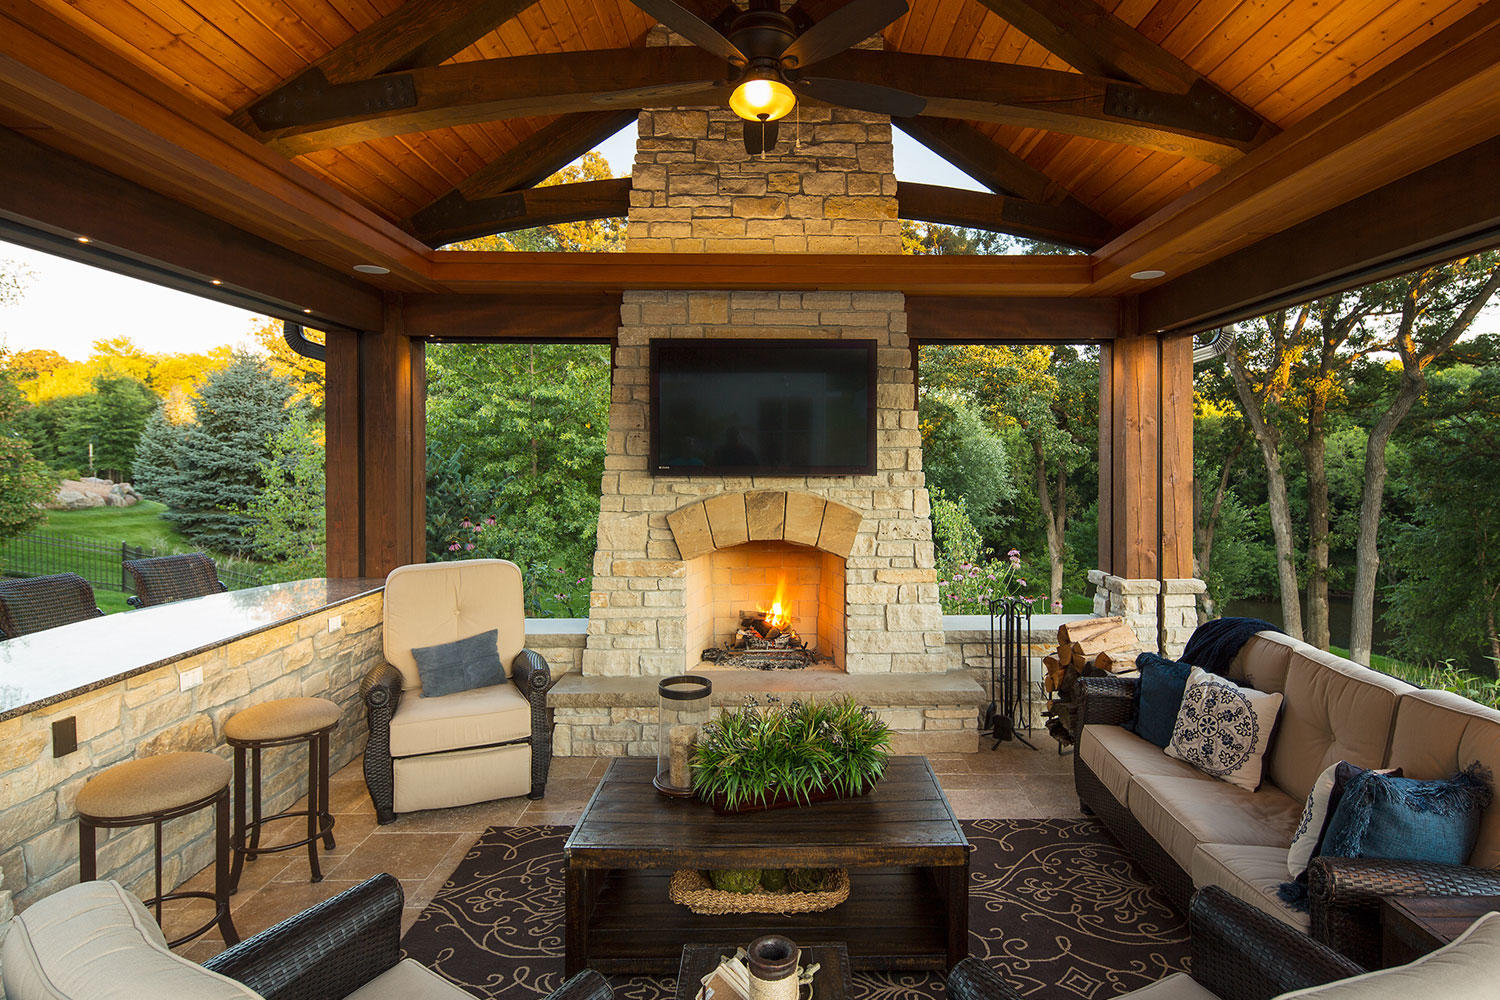 Outdoor Living Rooms Minneapolis & St. Paul | Southview Design on Backyard Outdoor Living Spaces id=34886